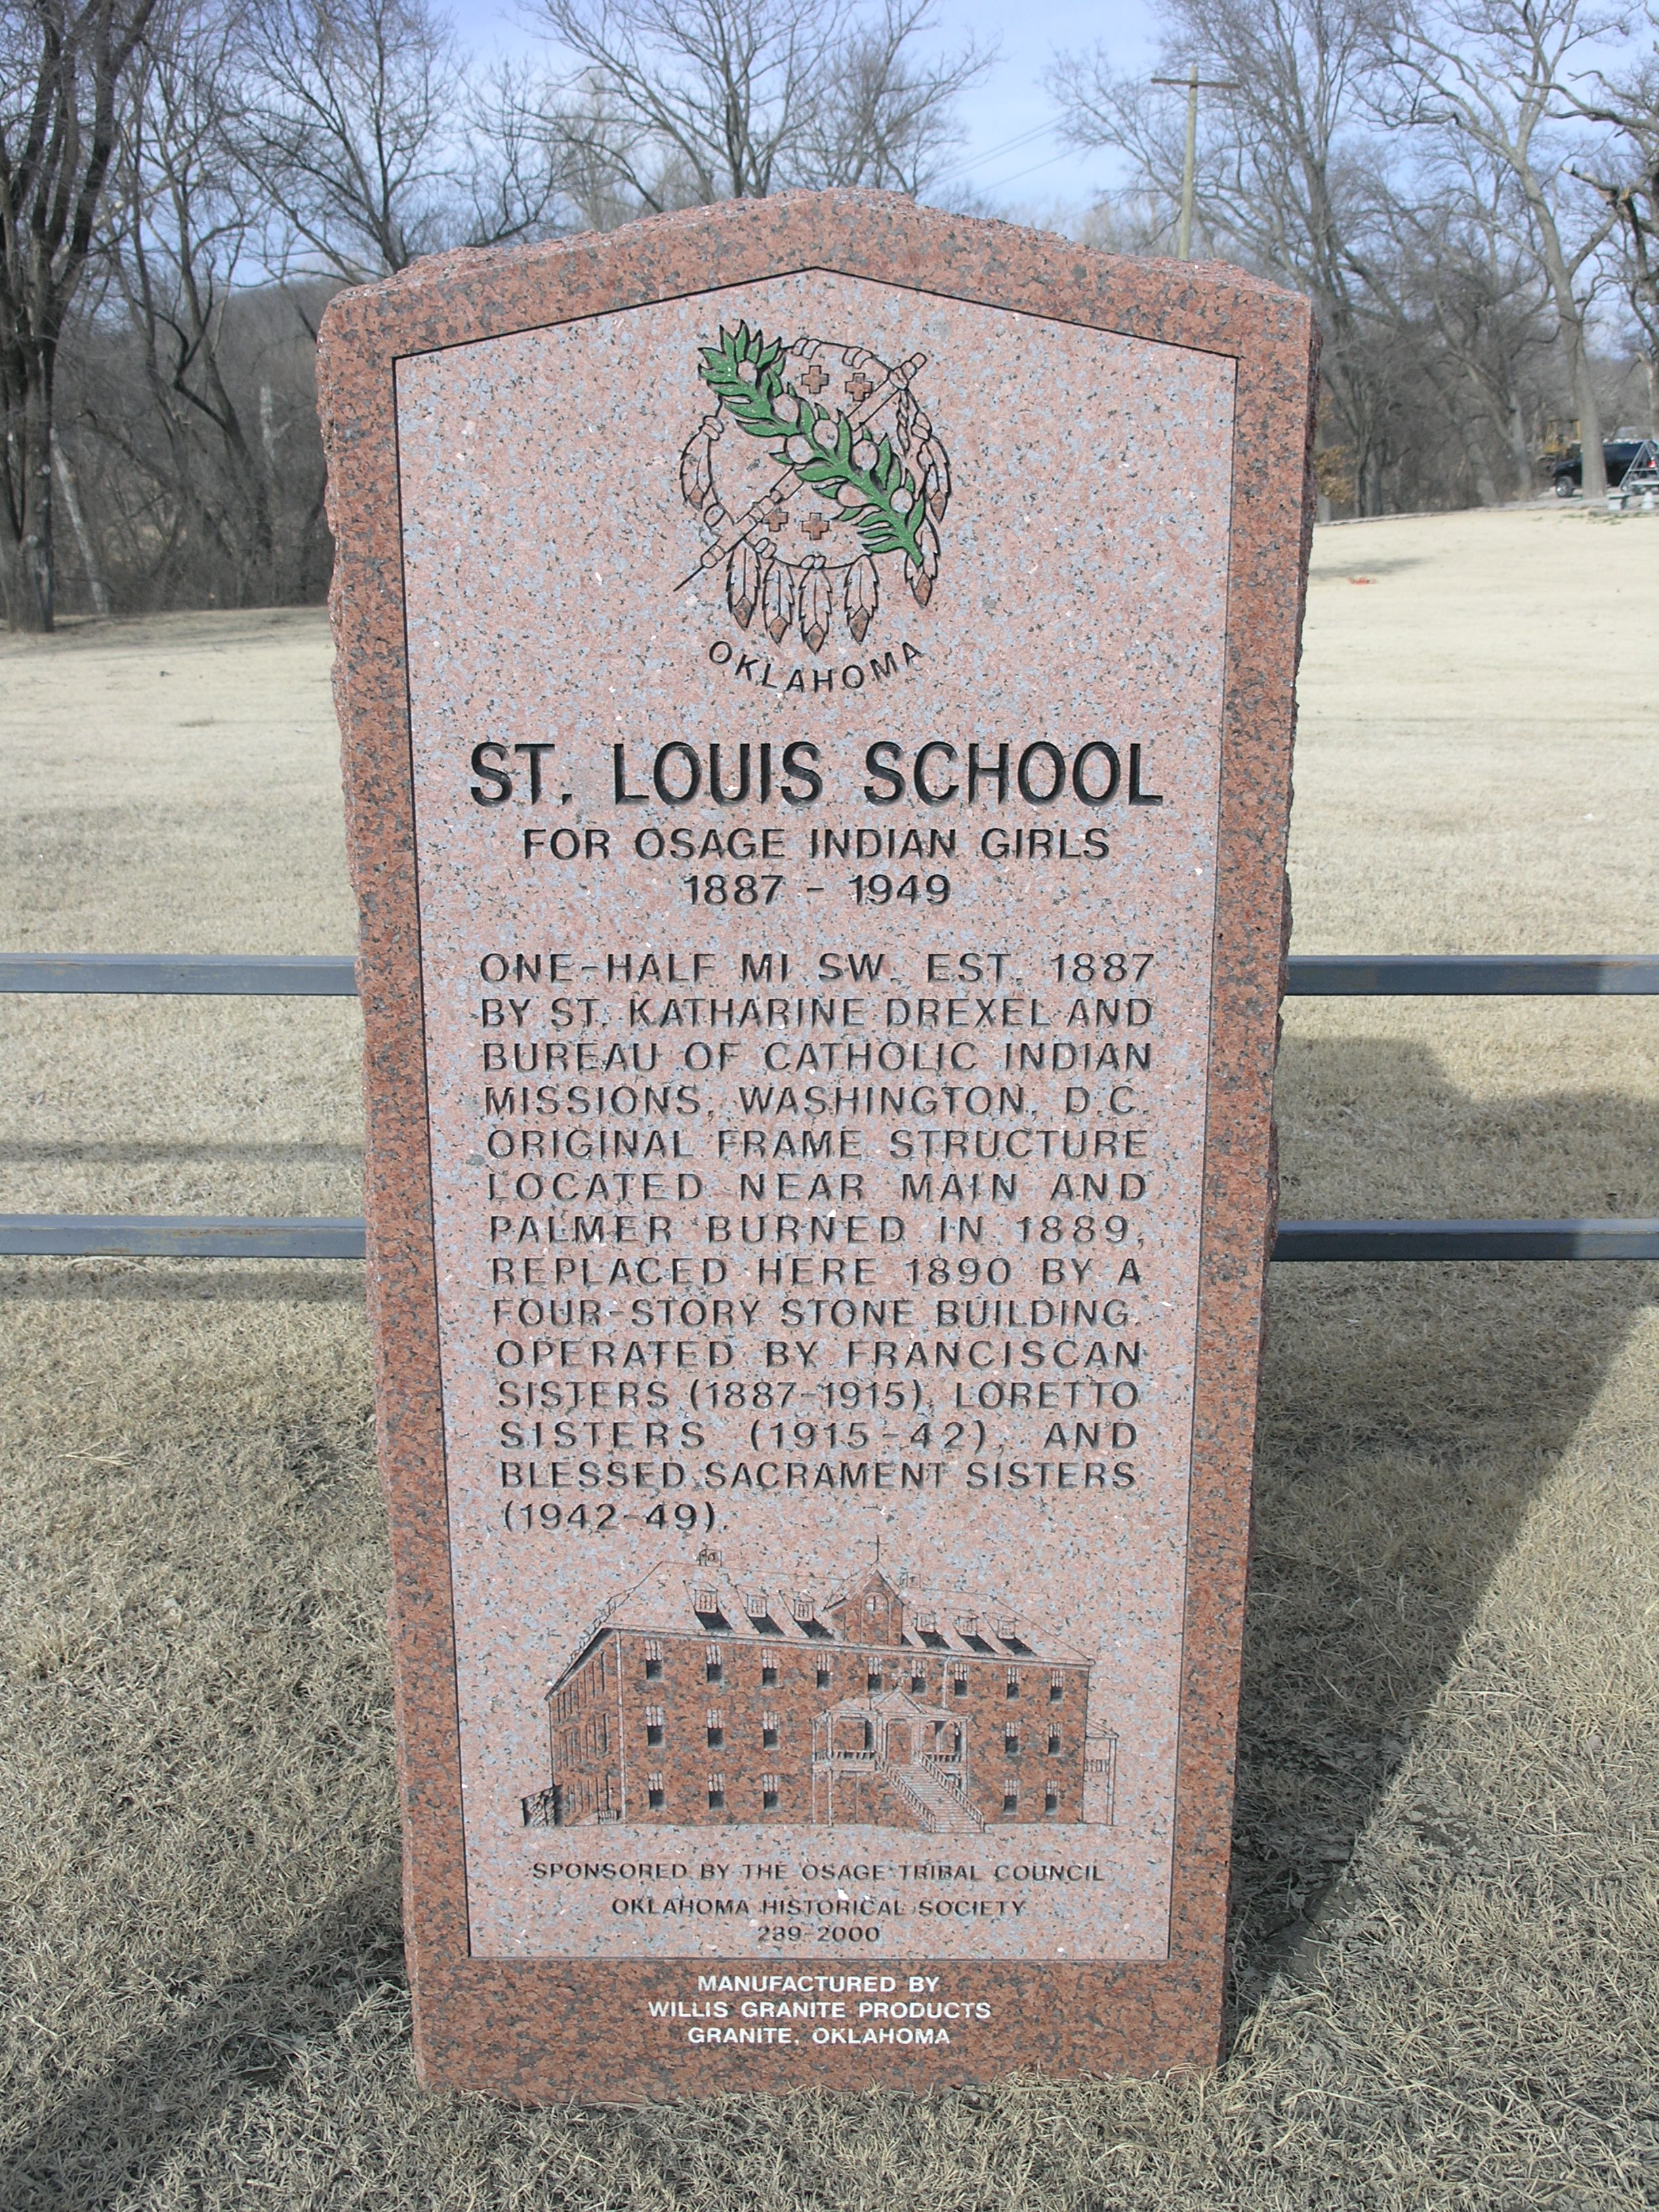 Exploring Oklahoma History: St. Louis School for Osage Indian Girls